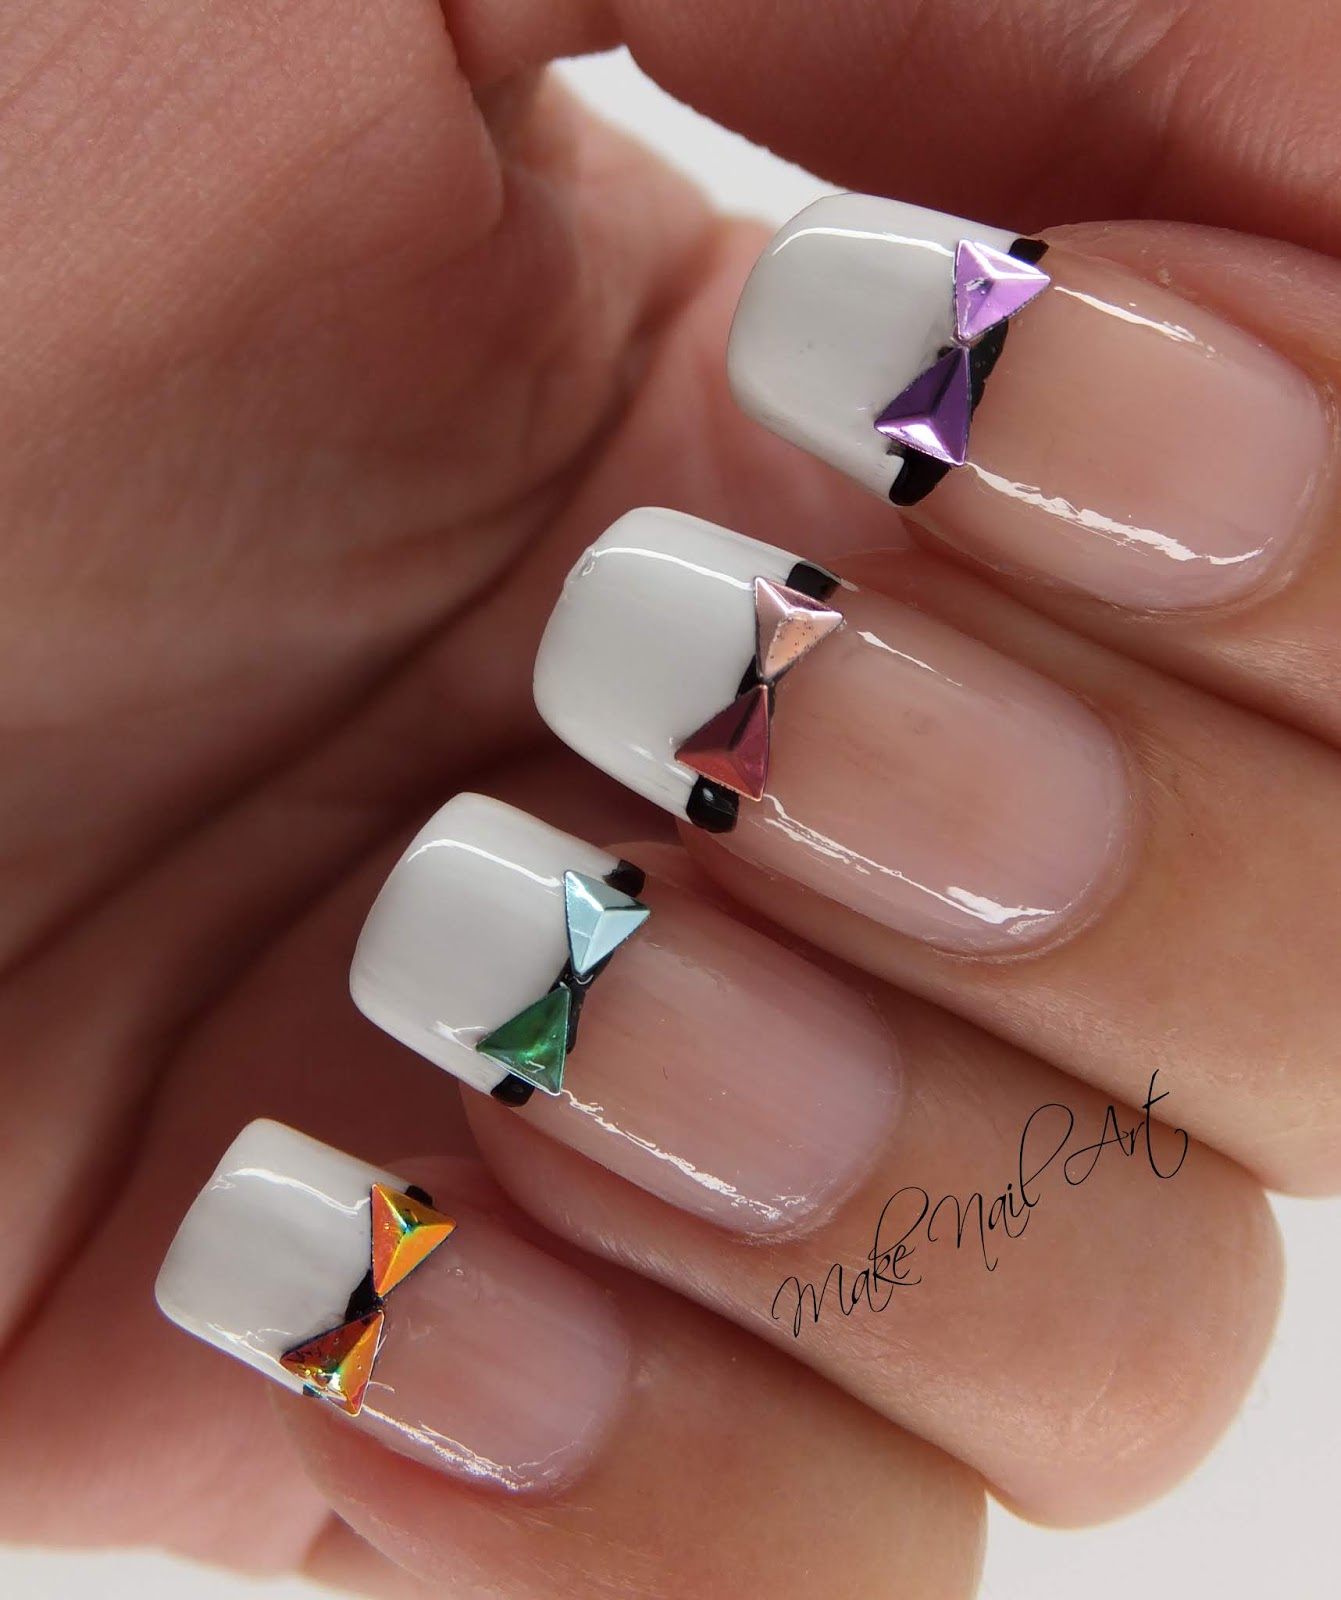 Make Nail Art: French Manicure And Holographic Bows Nail Art Design ...